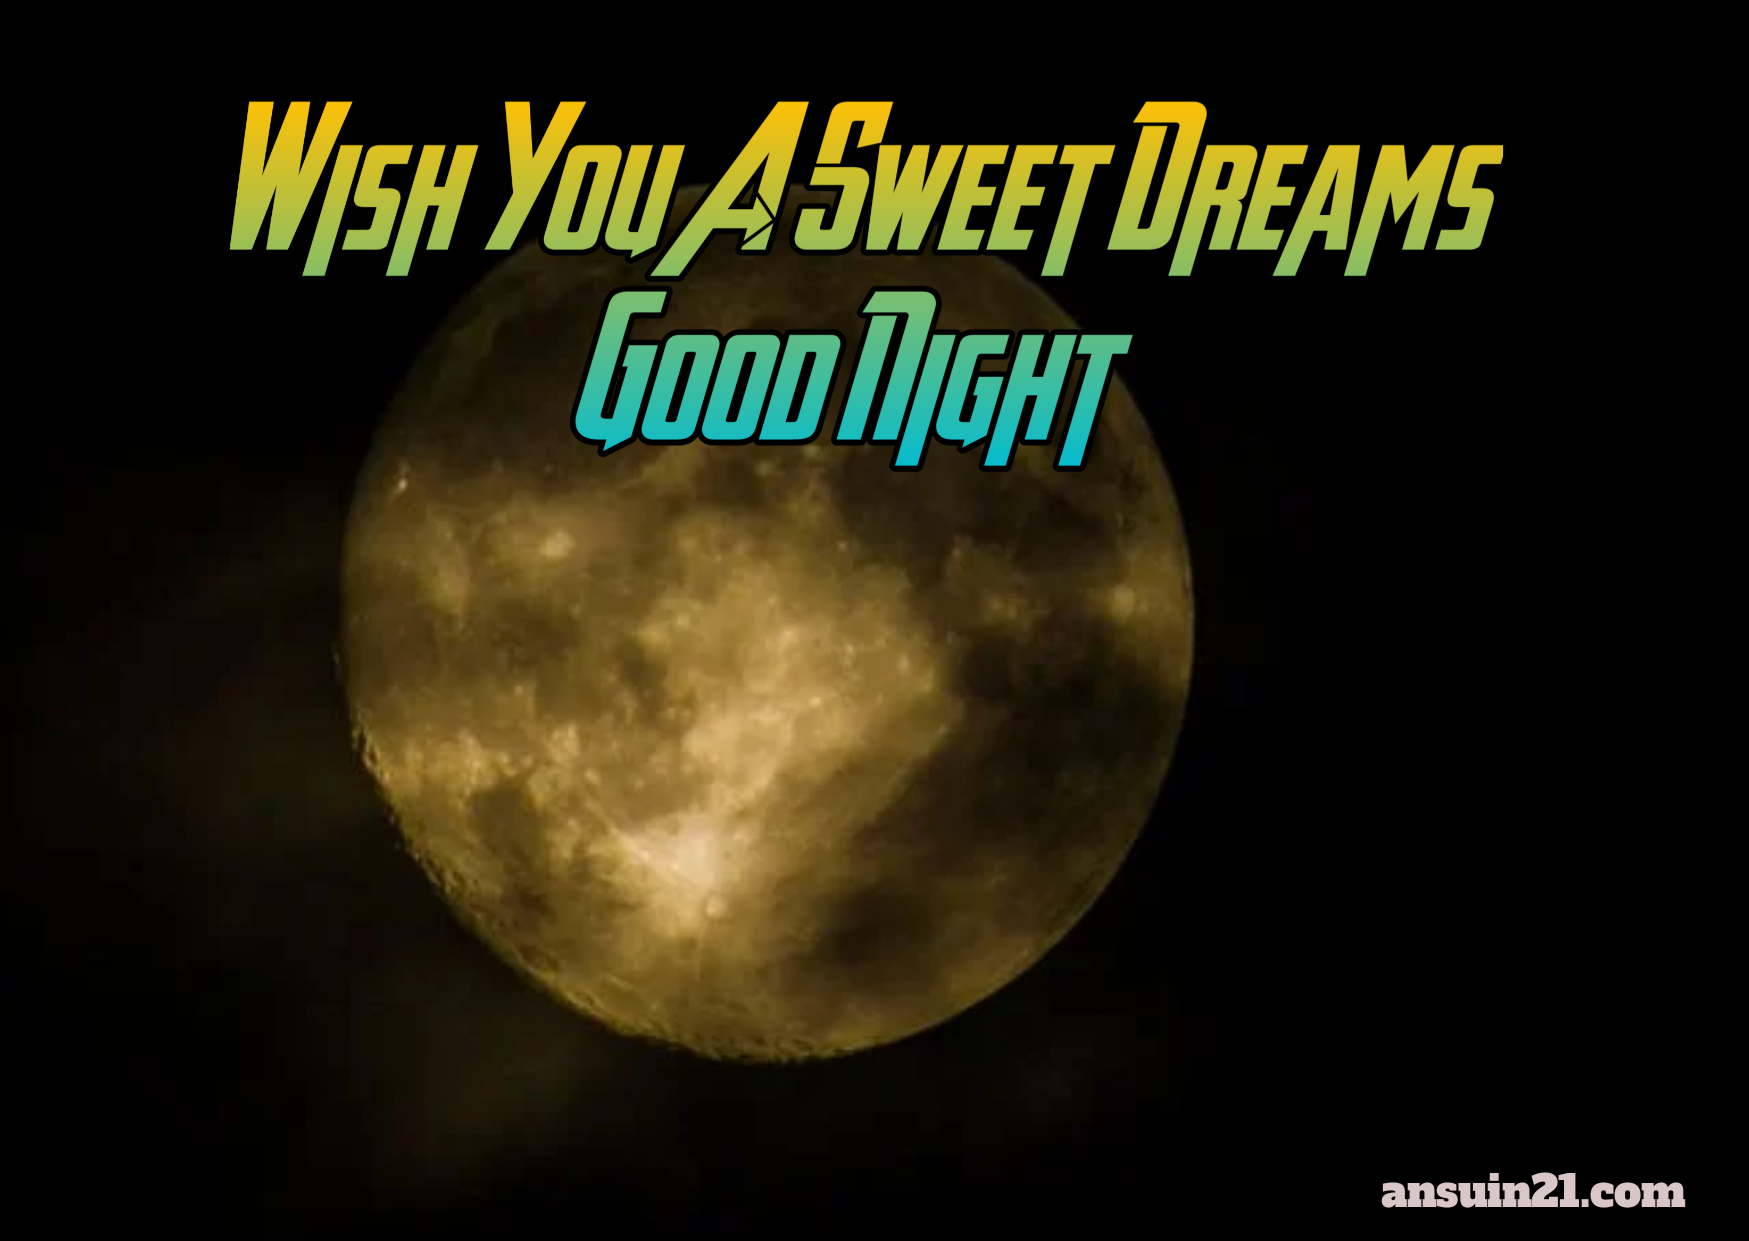 Best Beautiful Good Night Images, Status, Wishes, Massage for WhatsApp free download,